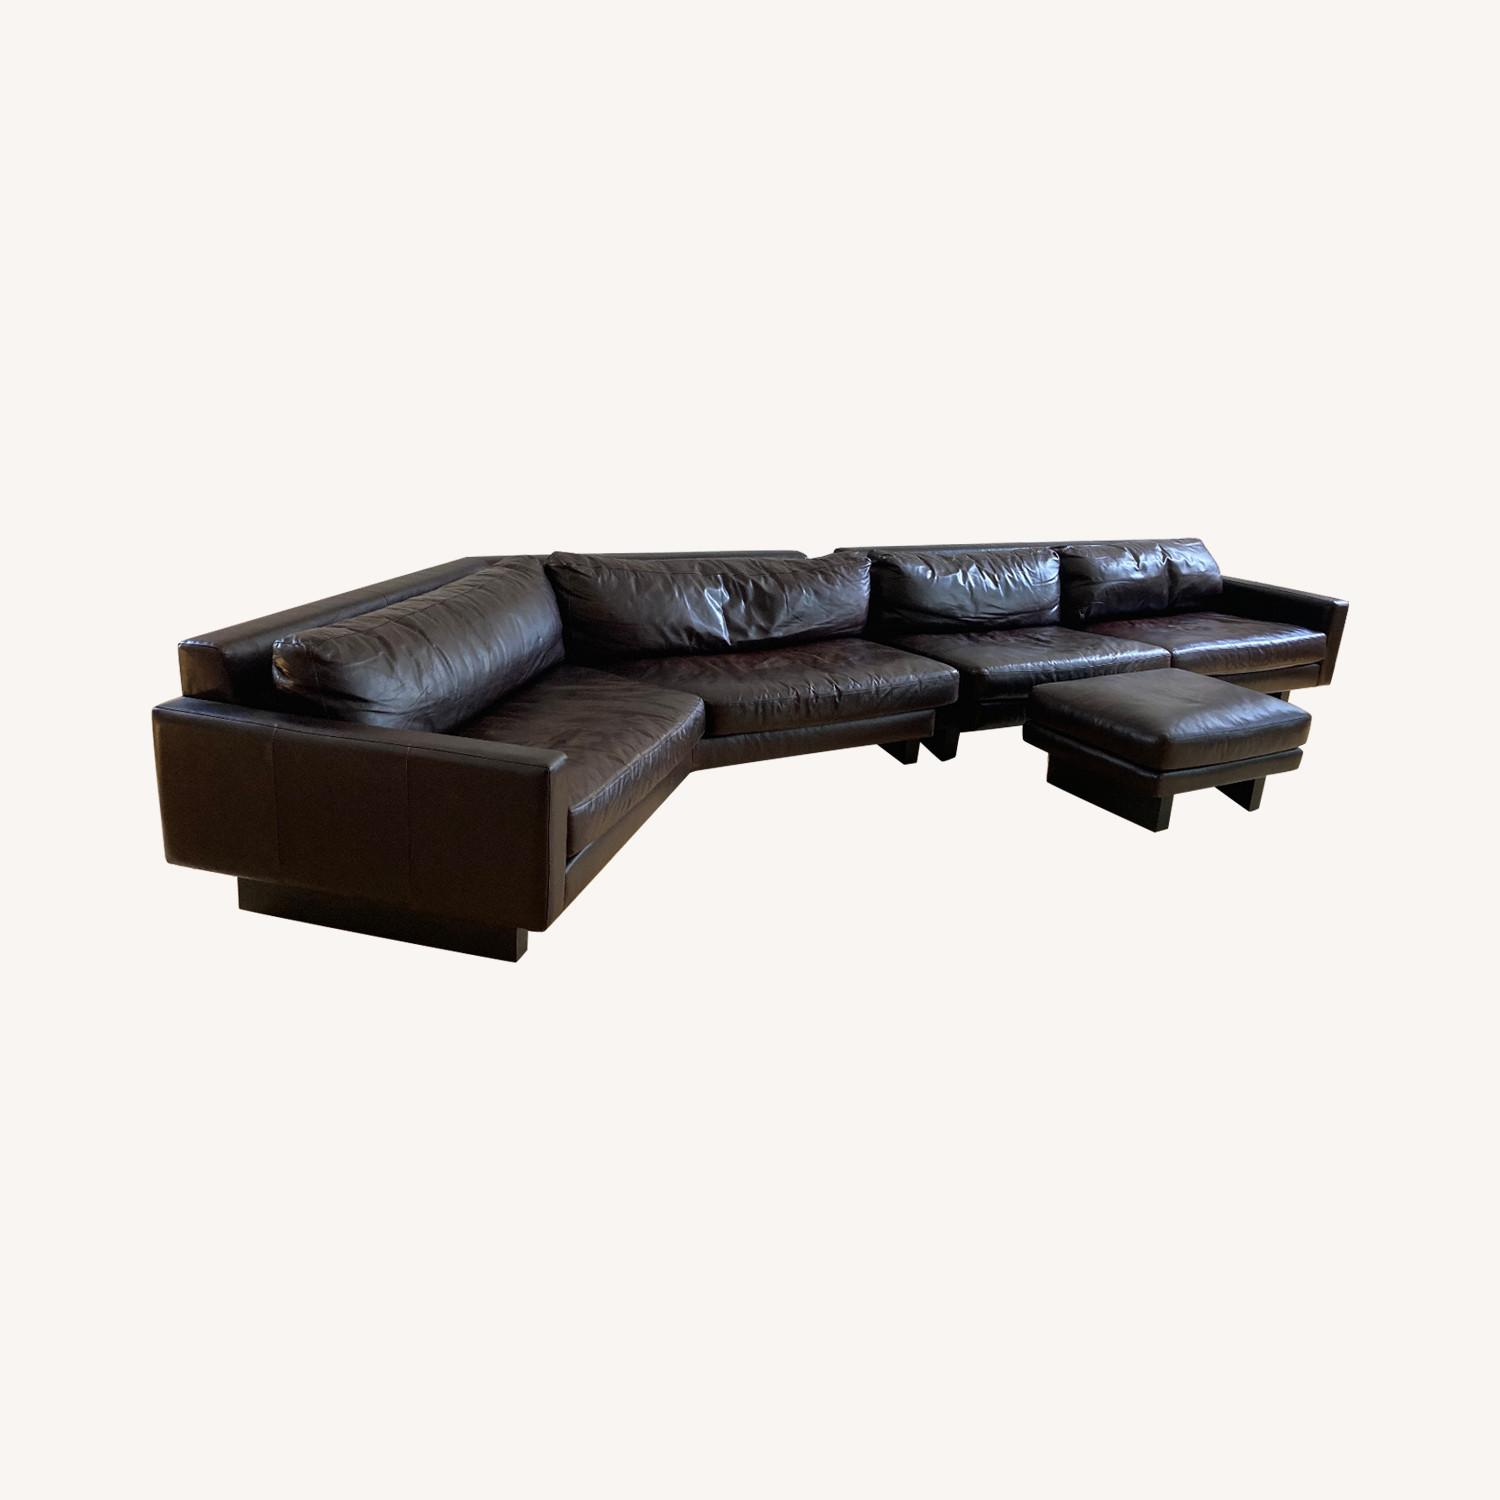 Room and Board Hesse Leather Couch Custom Sofa - image-0